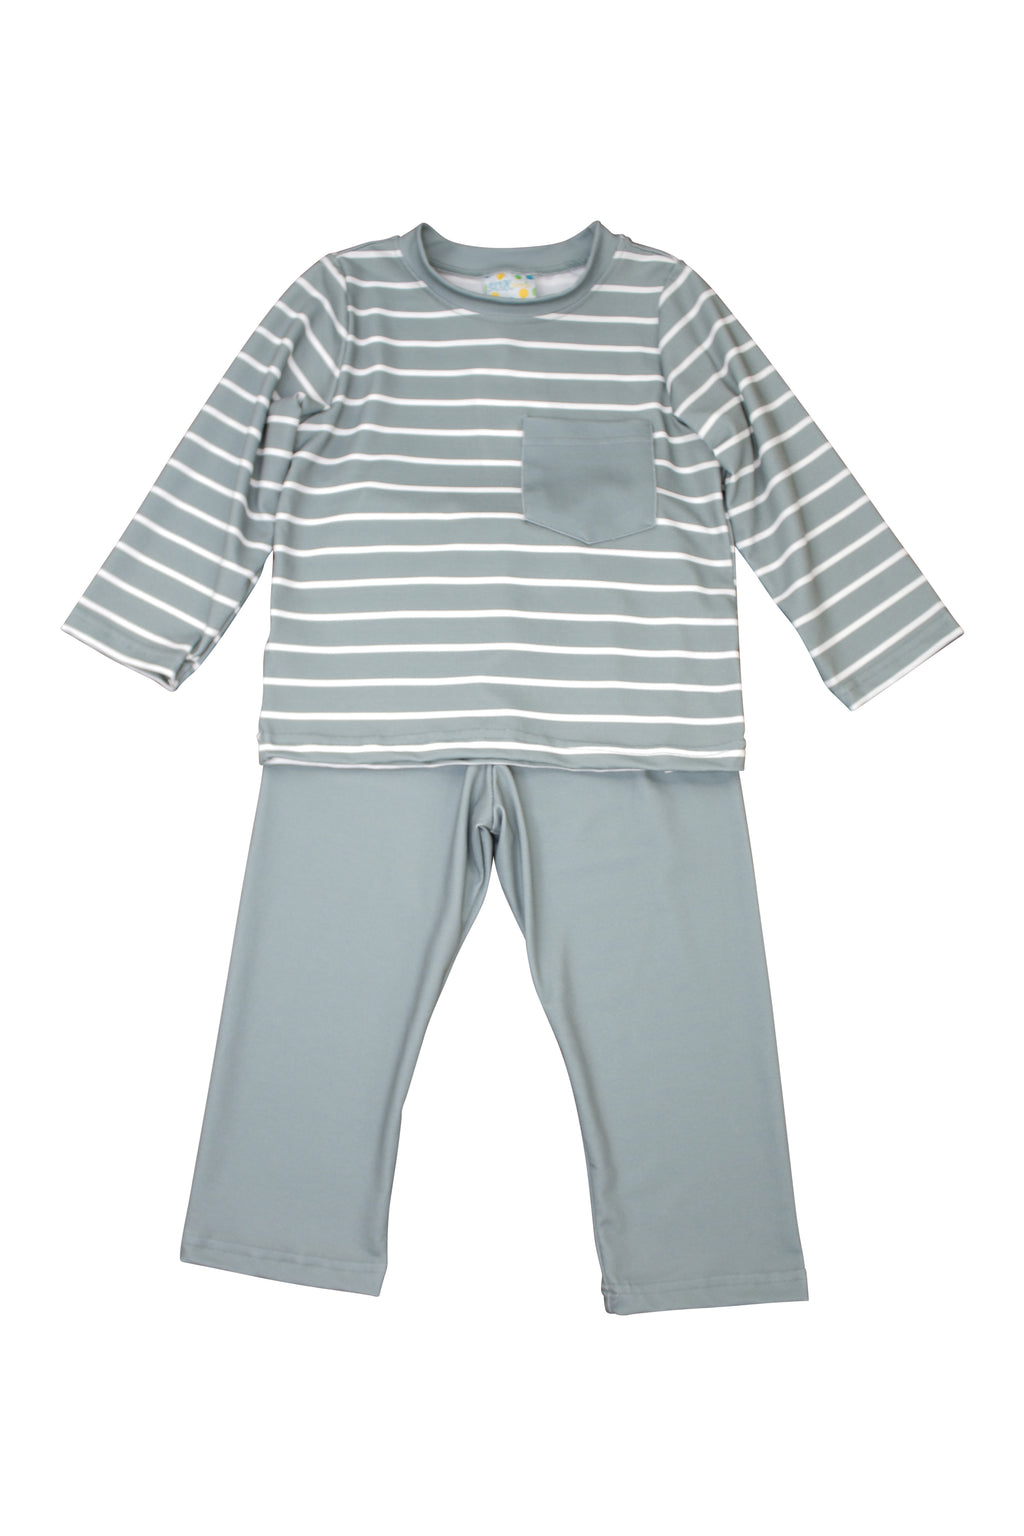 Boys Sage Stripes Pants Set